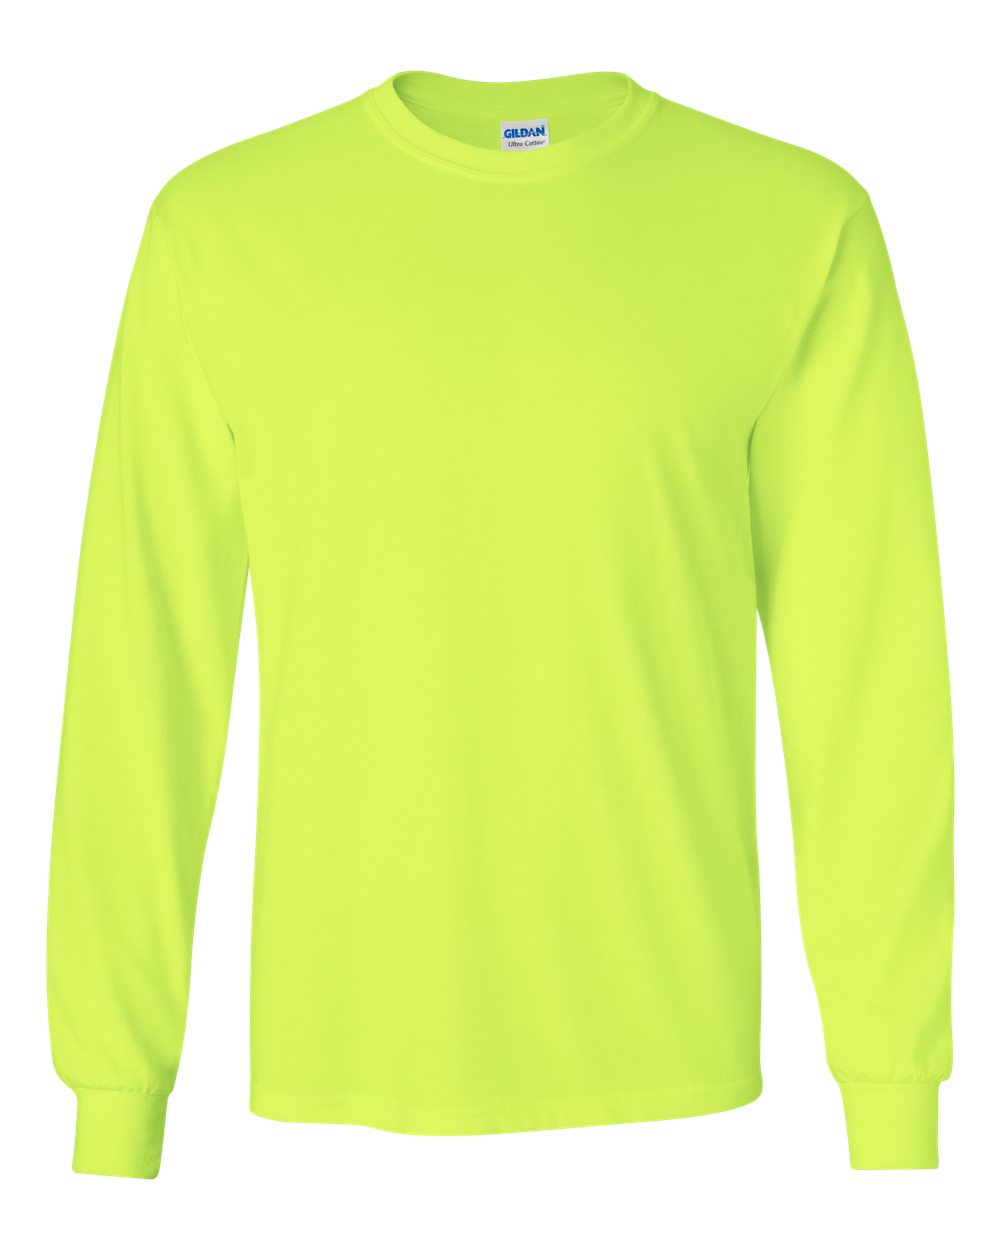 Gildan_2400_Safety_Green_Front_High.jpg